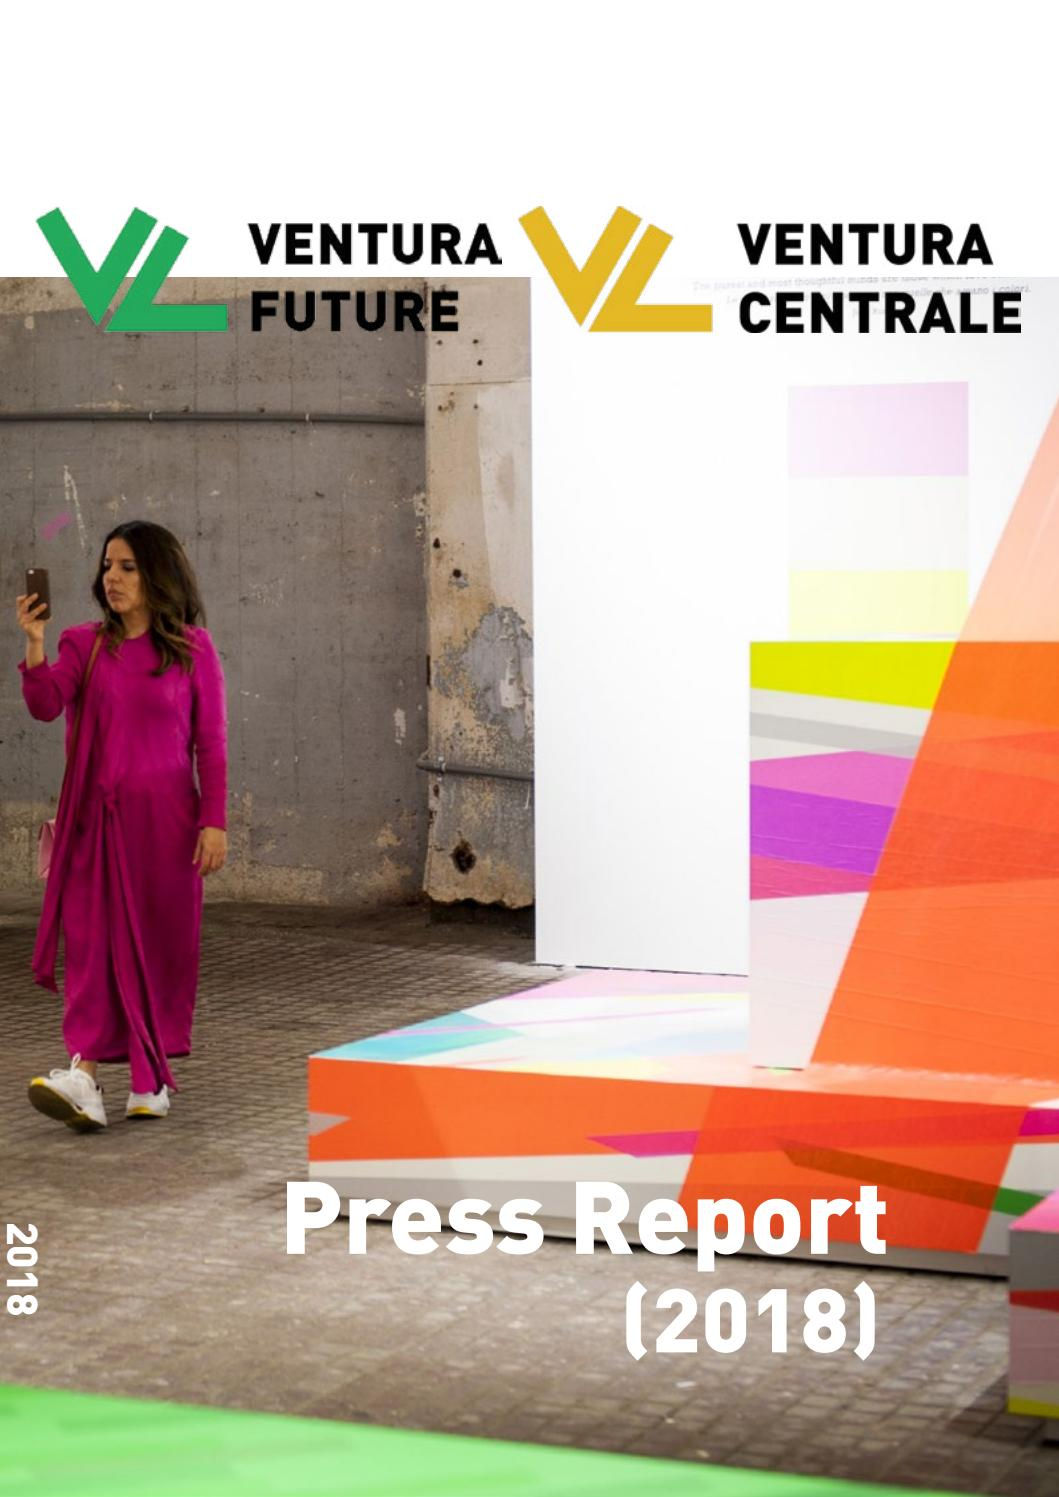 Teppich Aura Poco Ventura Future Ventura Centrale Press Report 2018